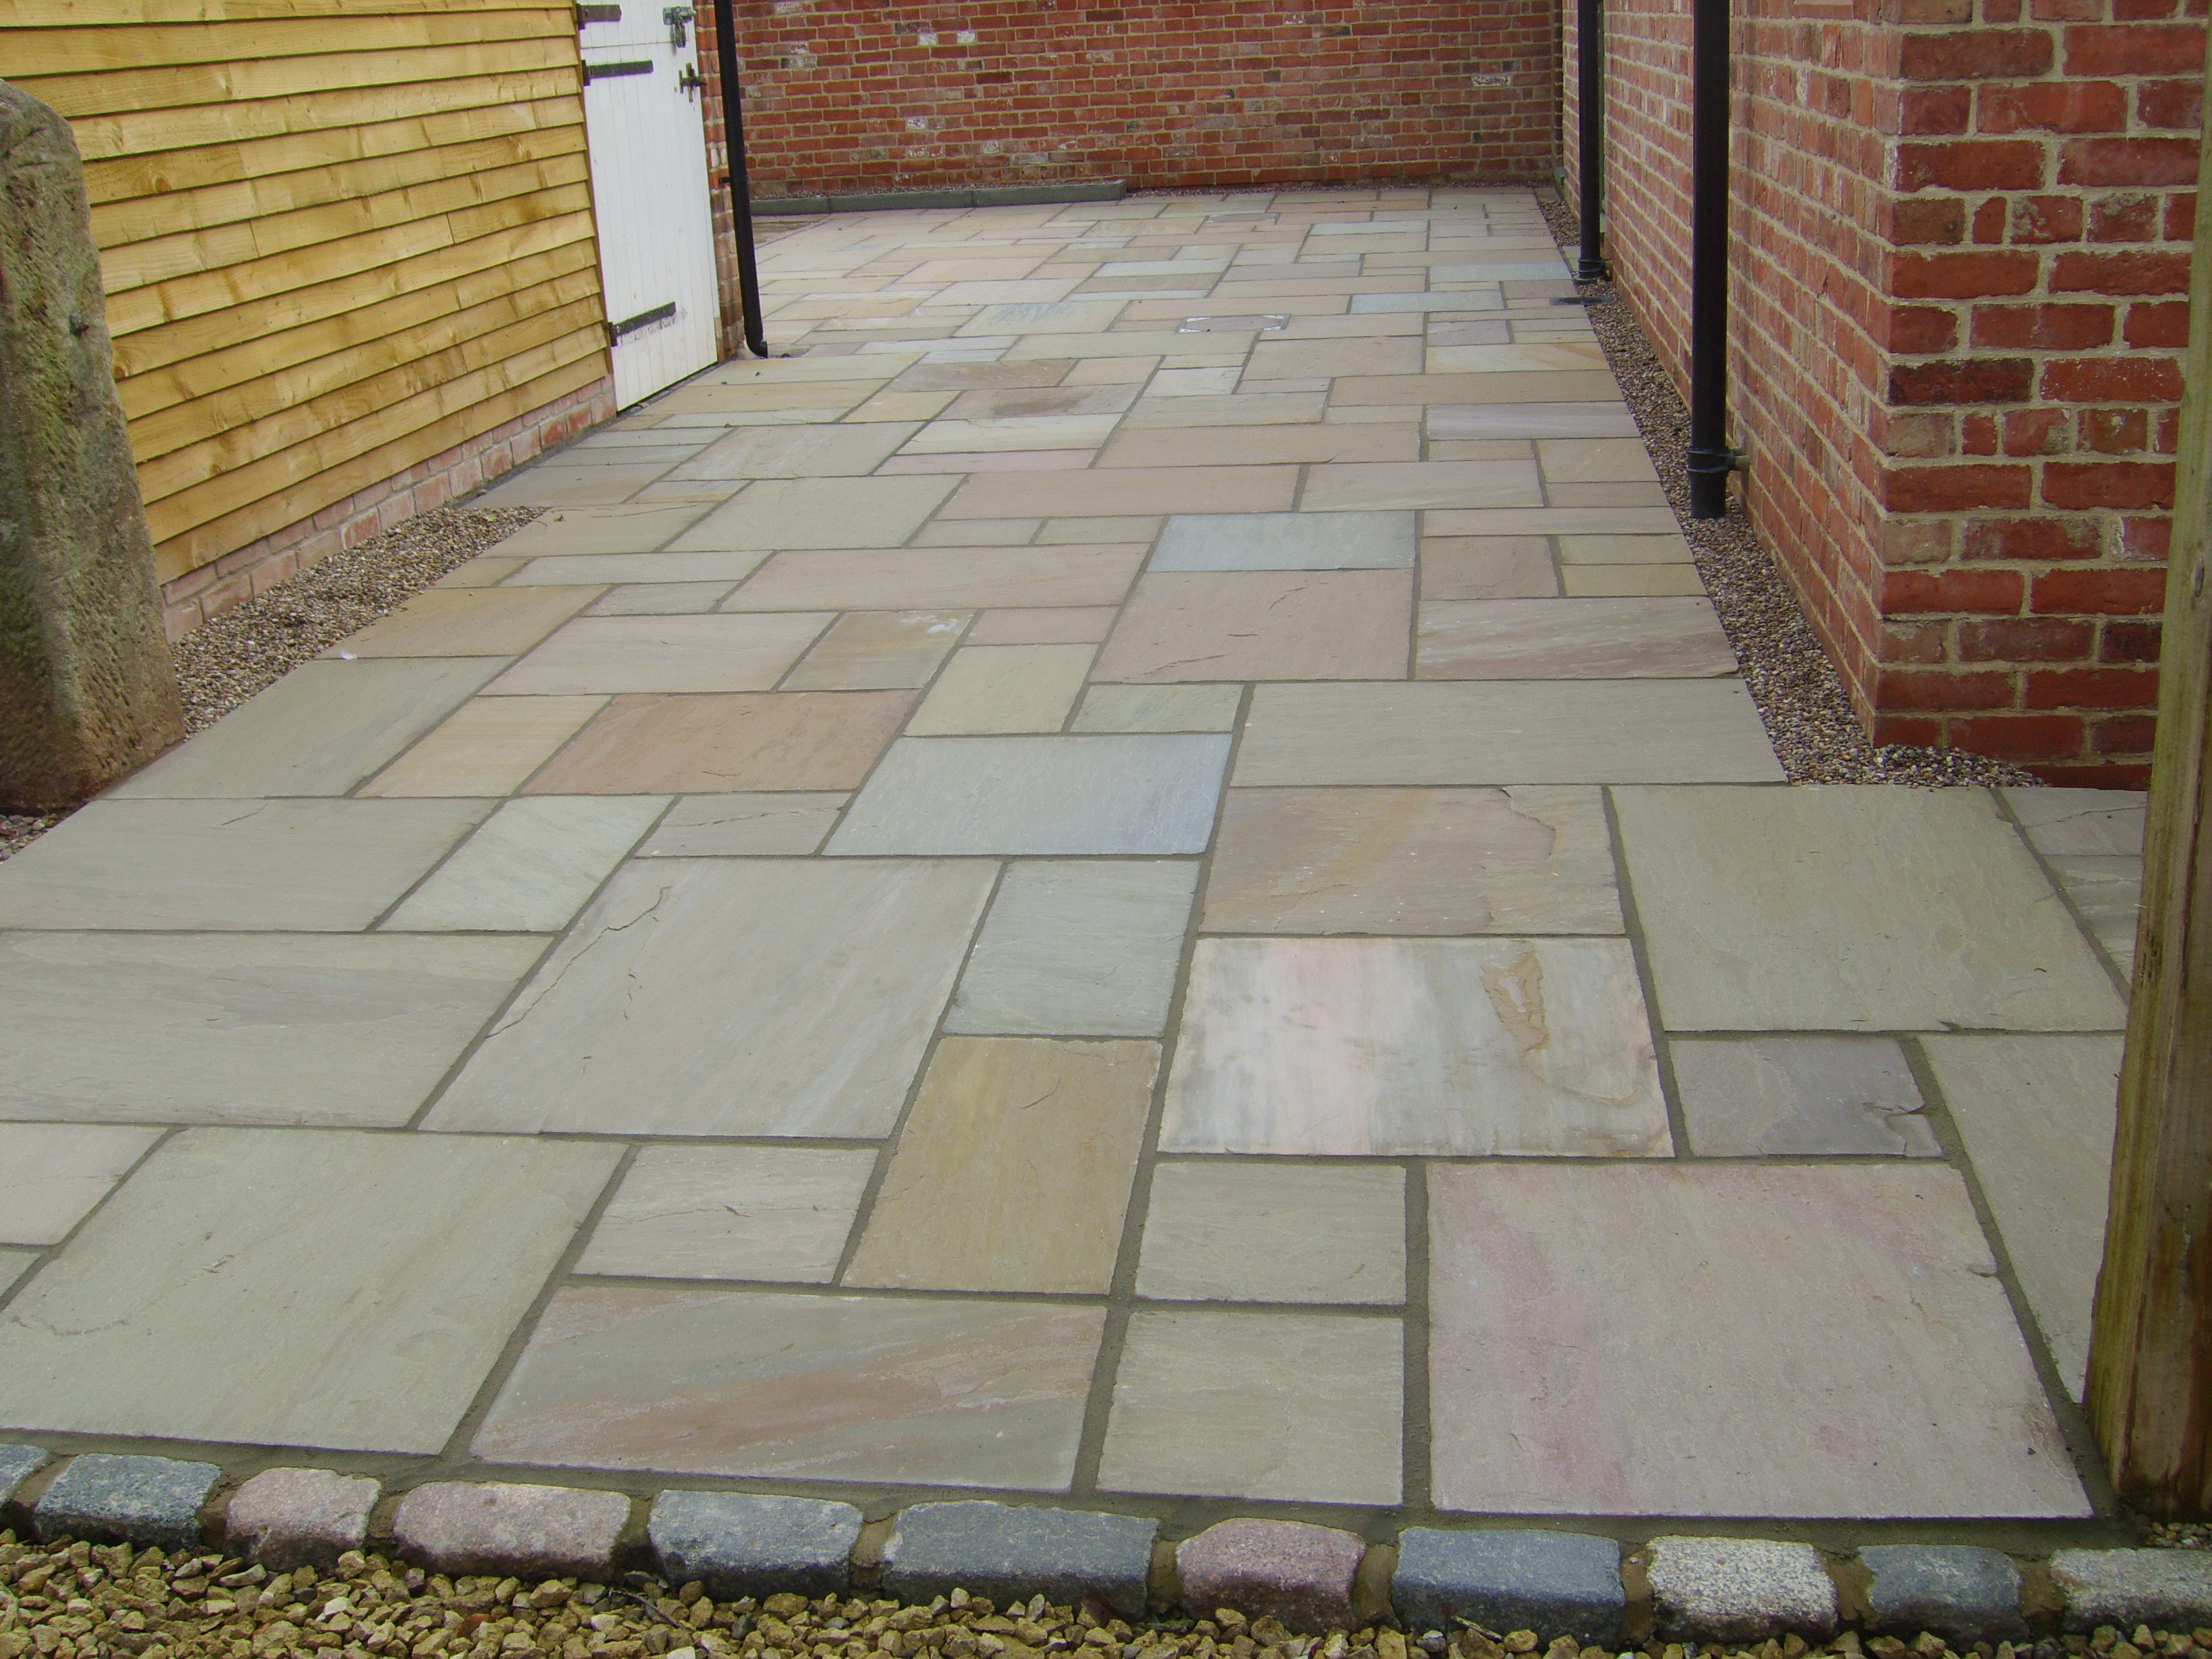 Indian Stone Paving Derbyshire And Staffordshire Alan